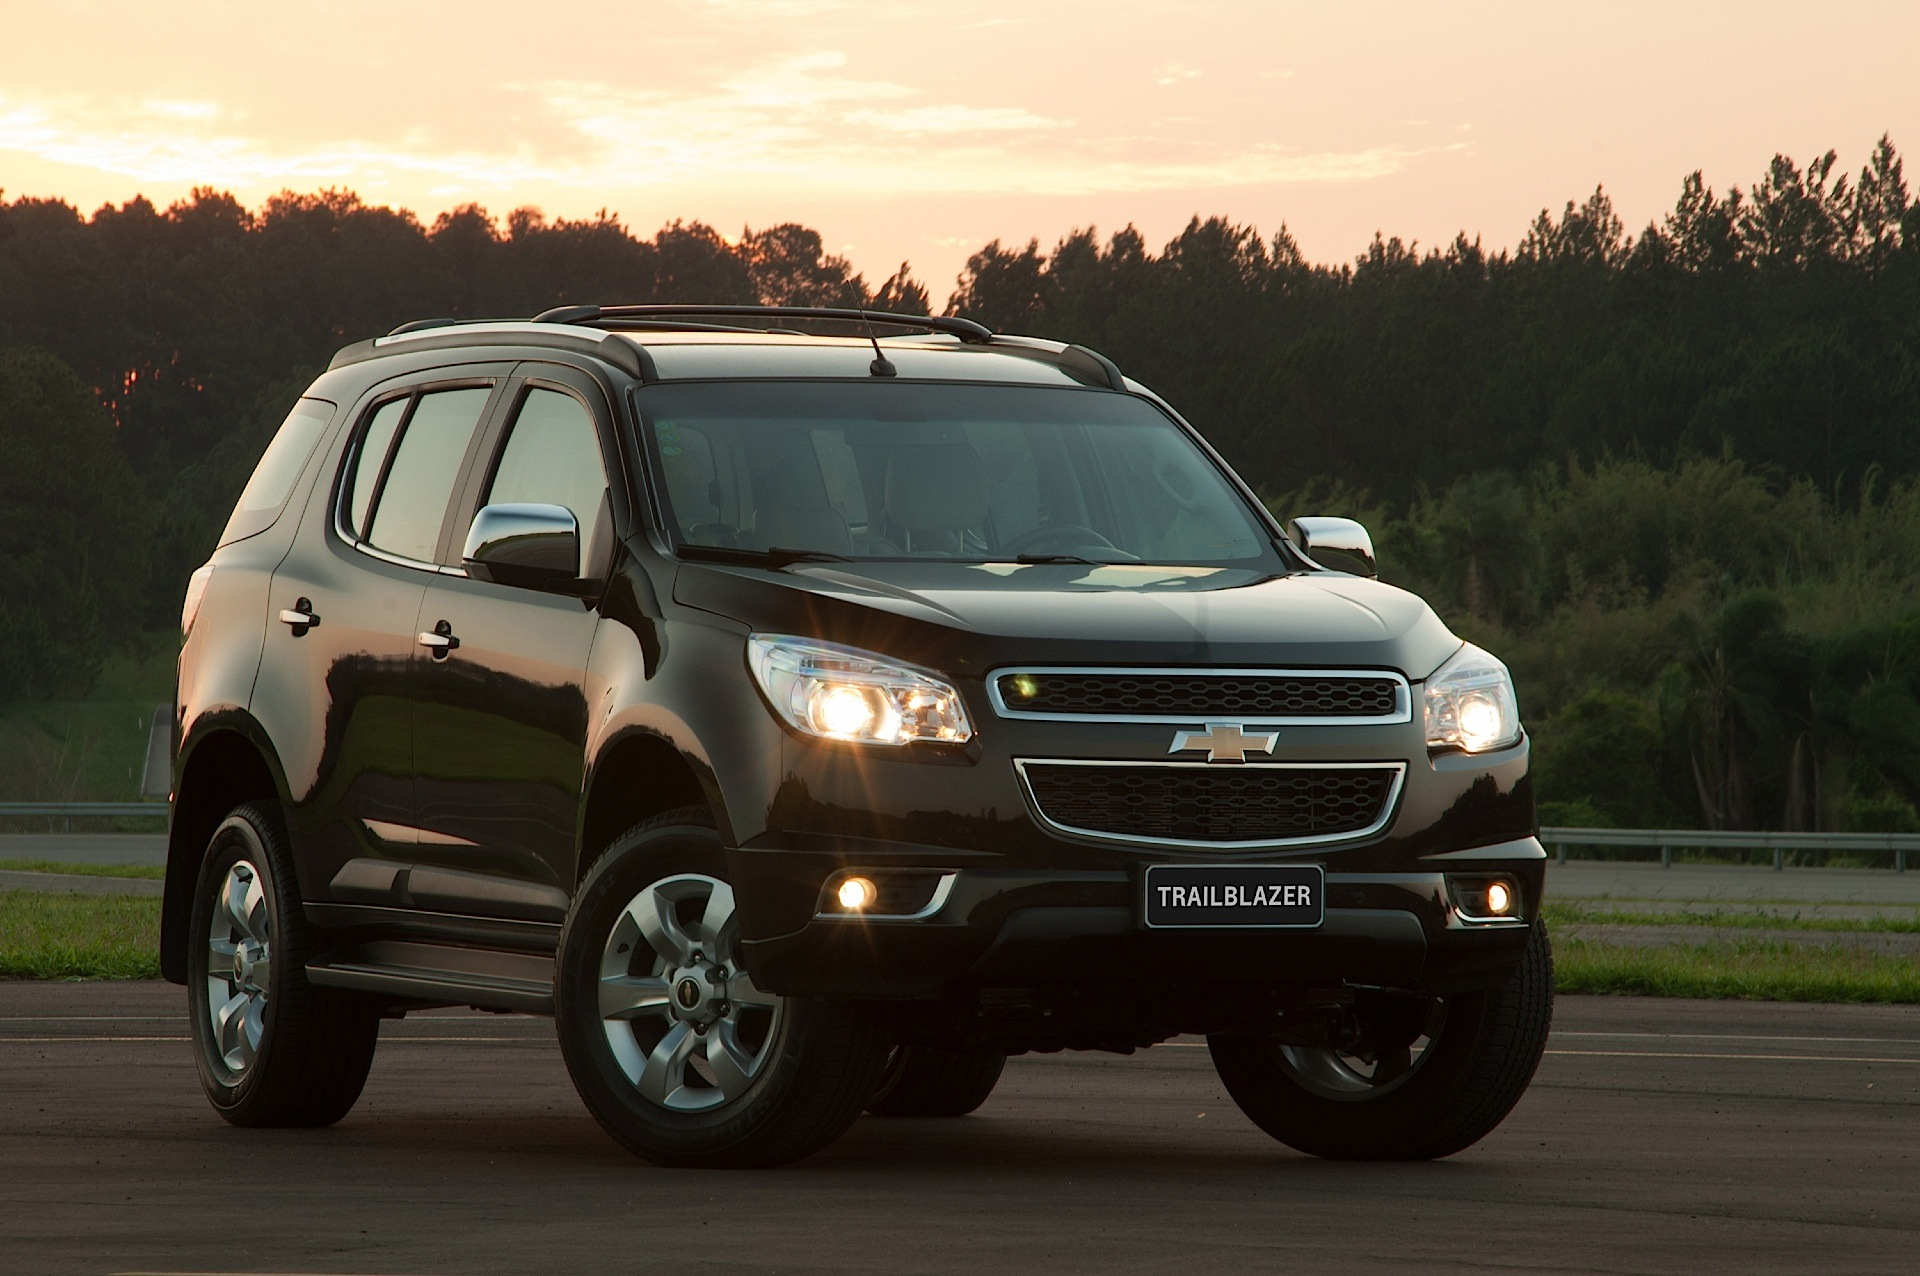 Chevrolet Trailblazer #2